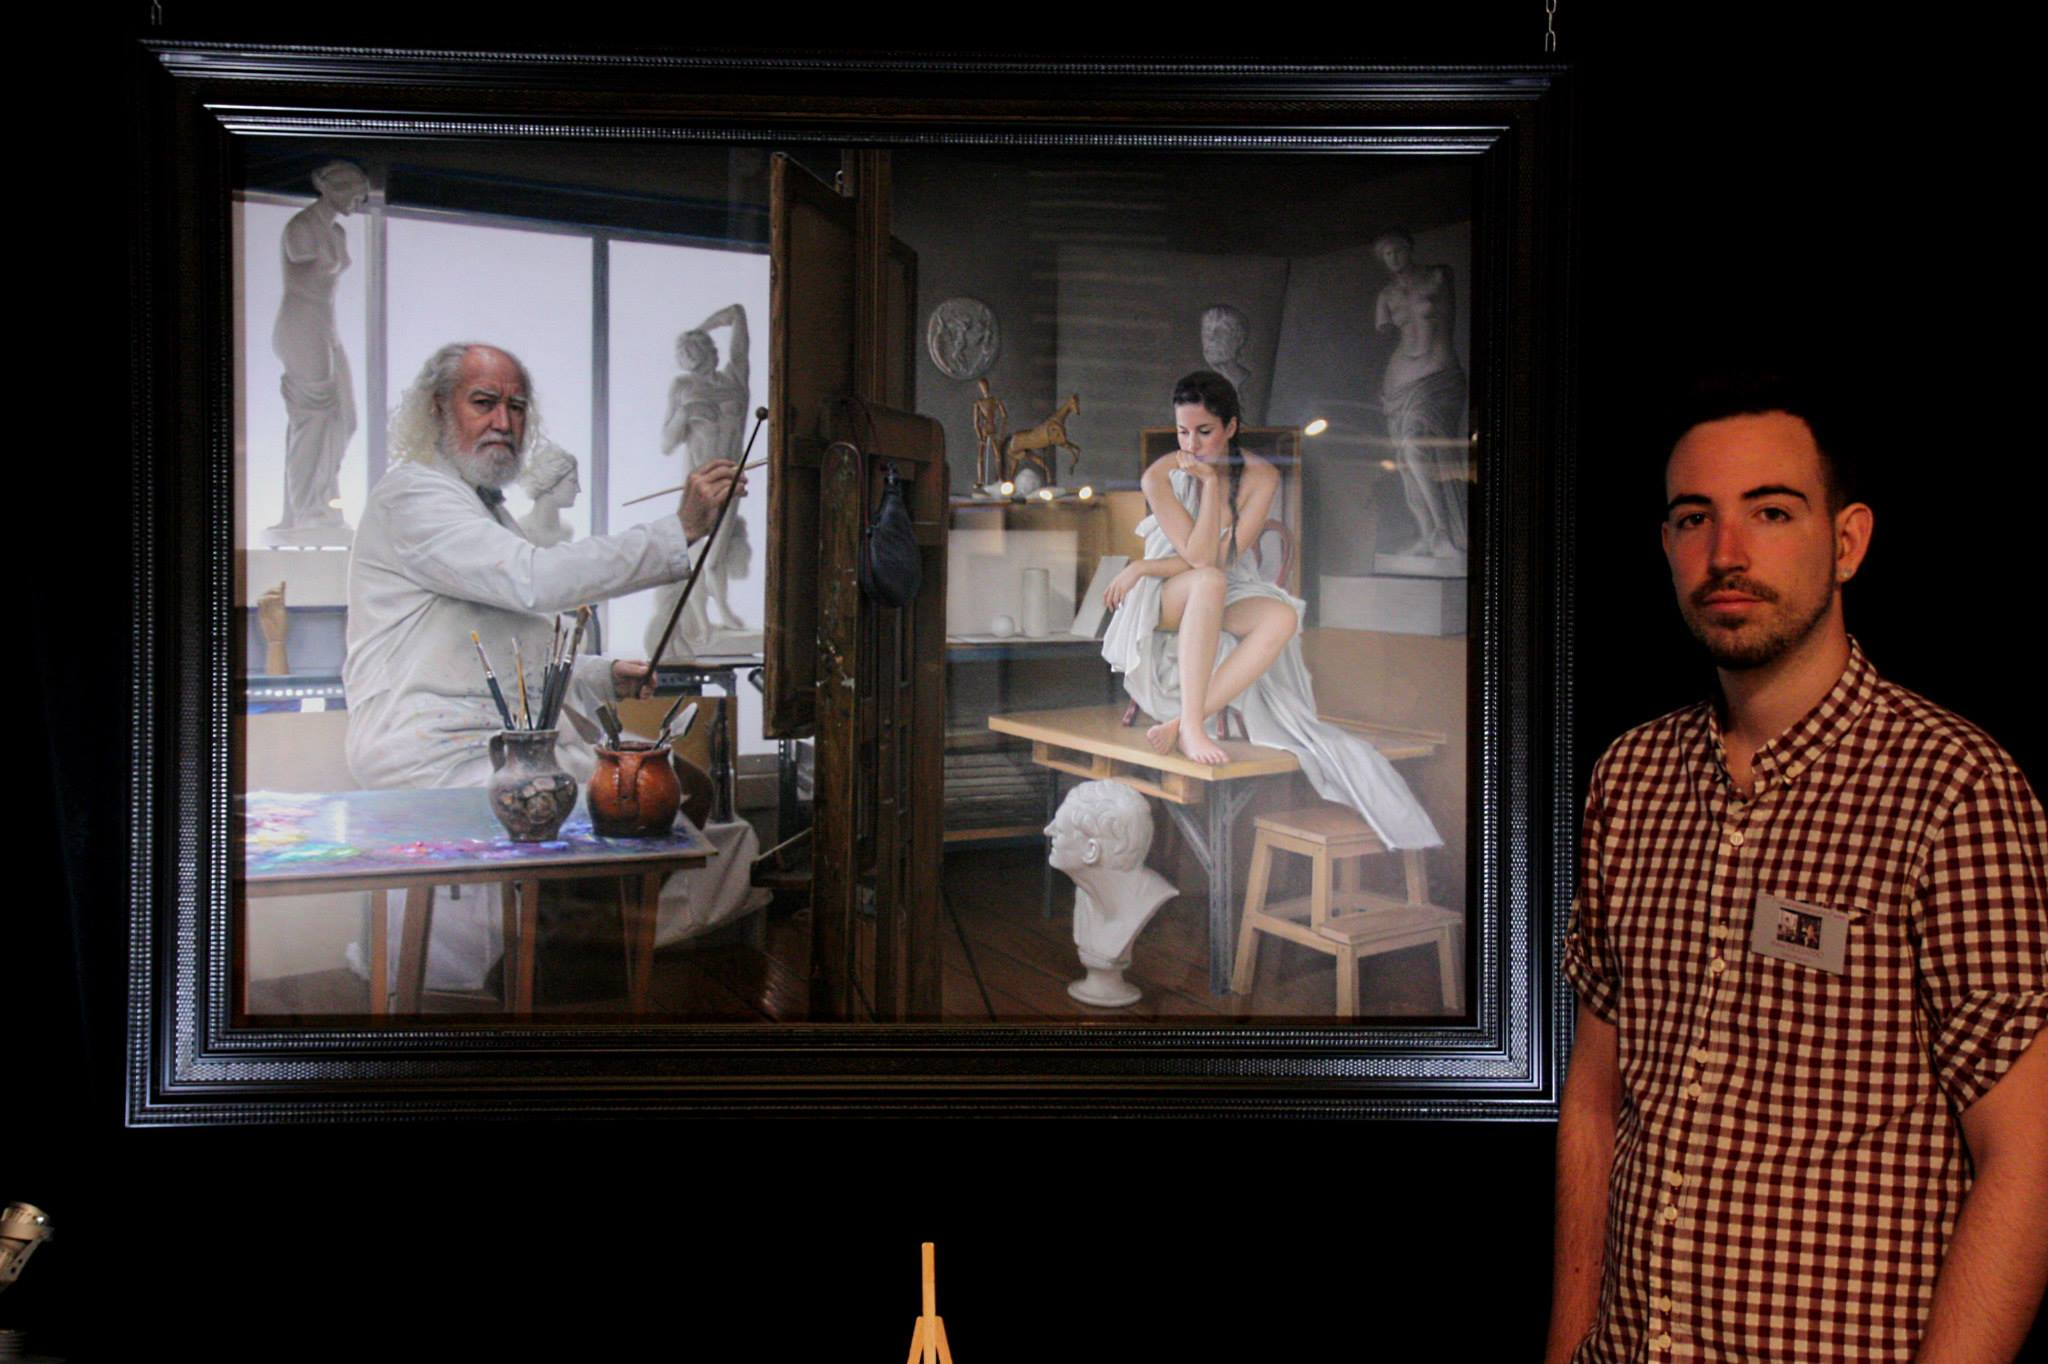 Ruben Bellos Adorna with his work shown at Feytiat in France August 2015